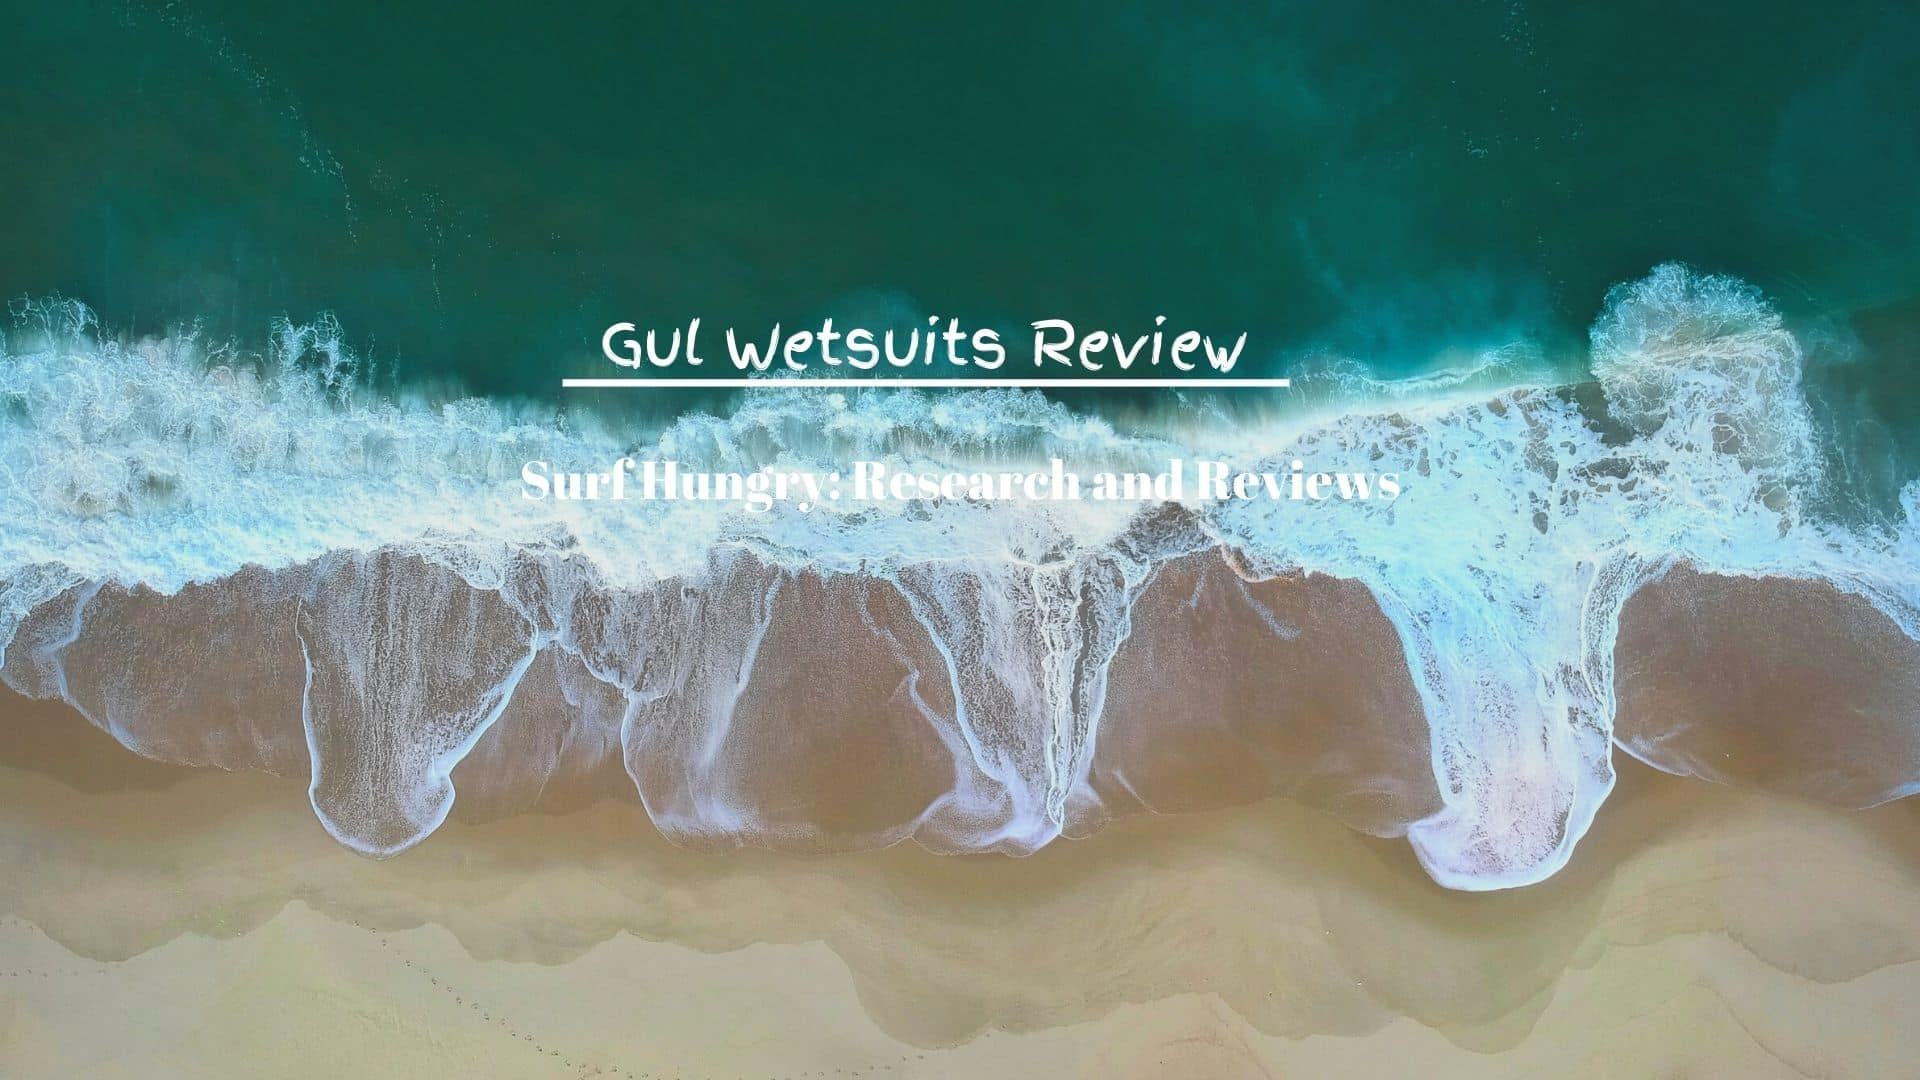 gul wetsuits review